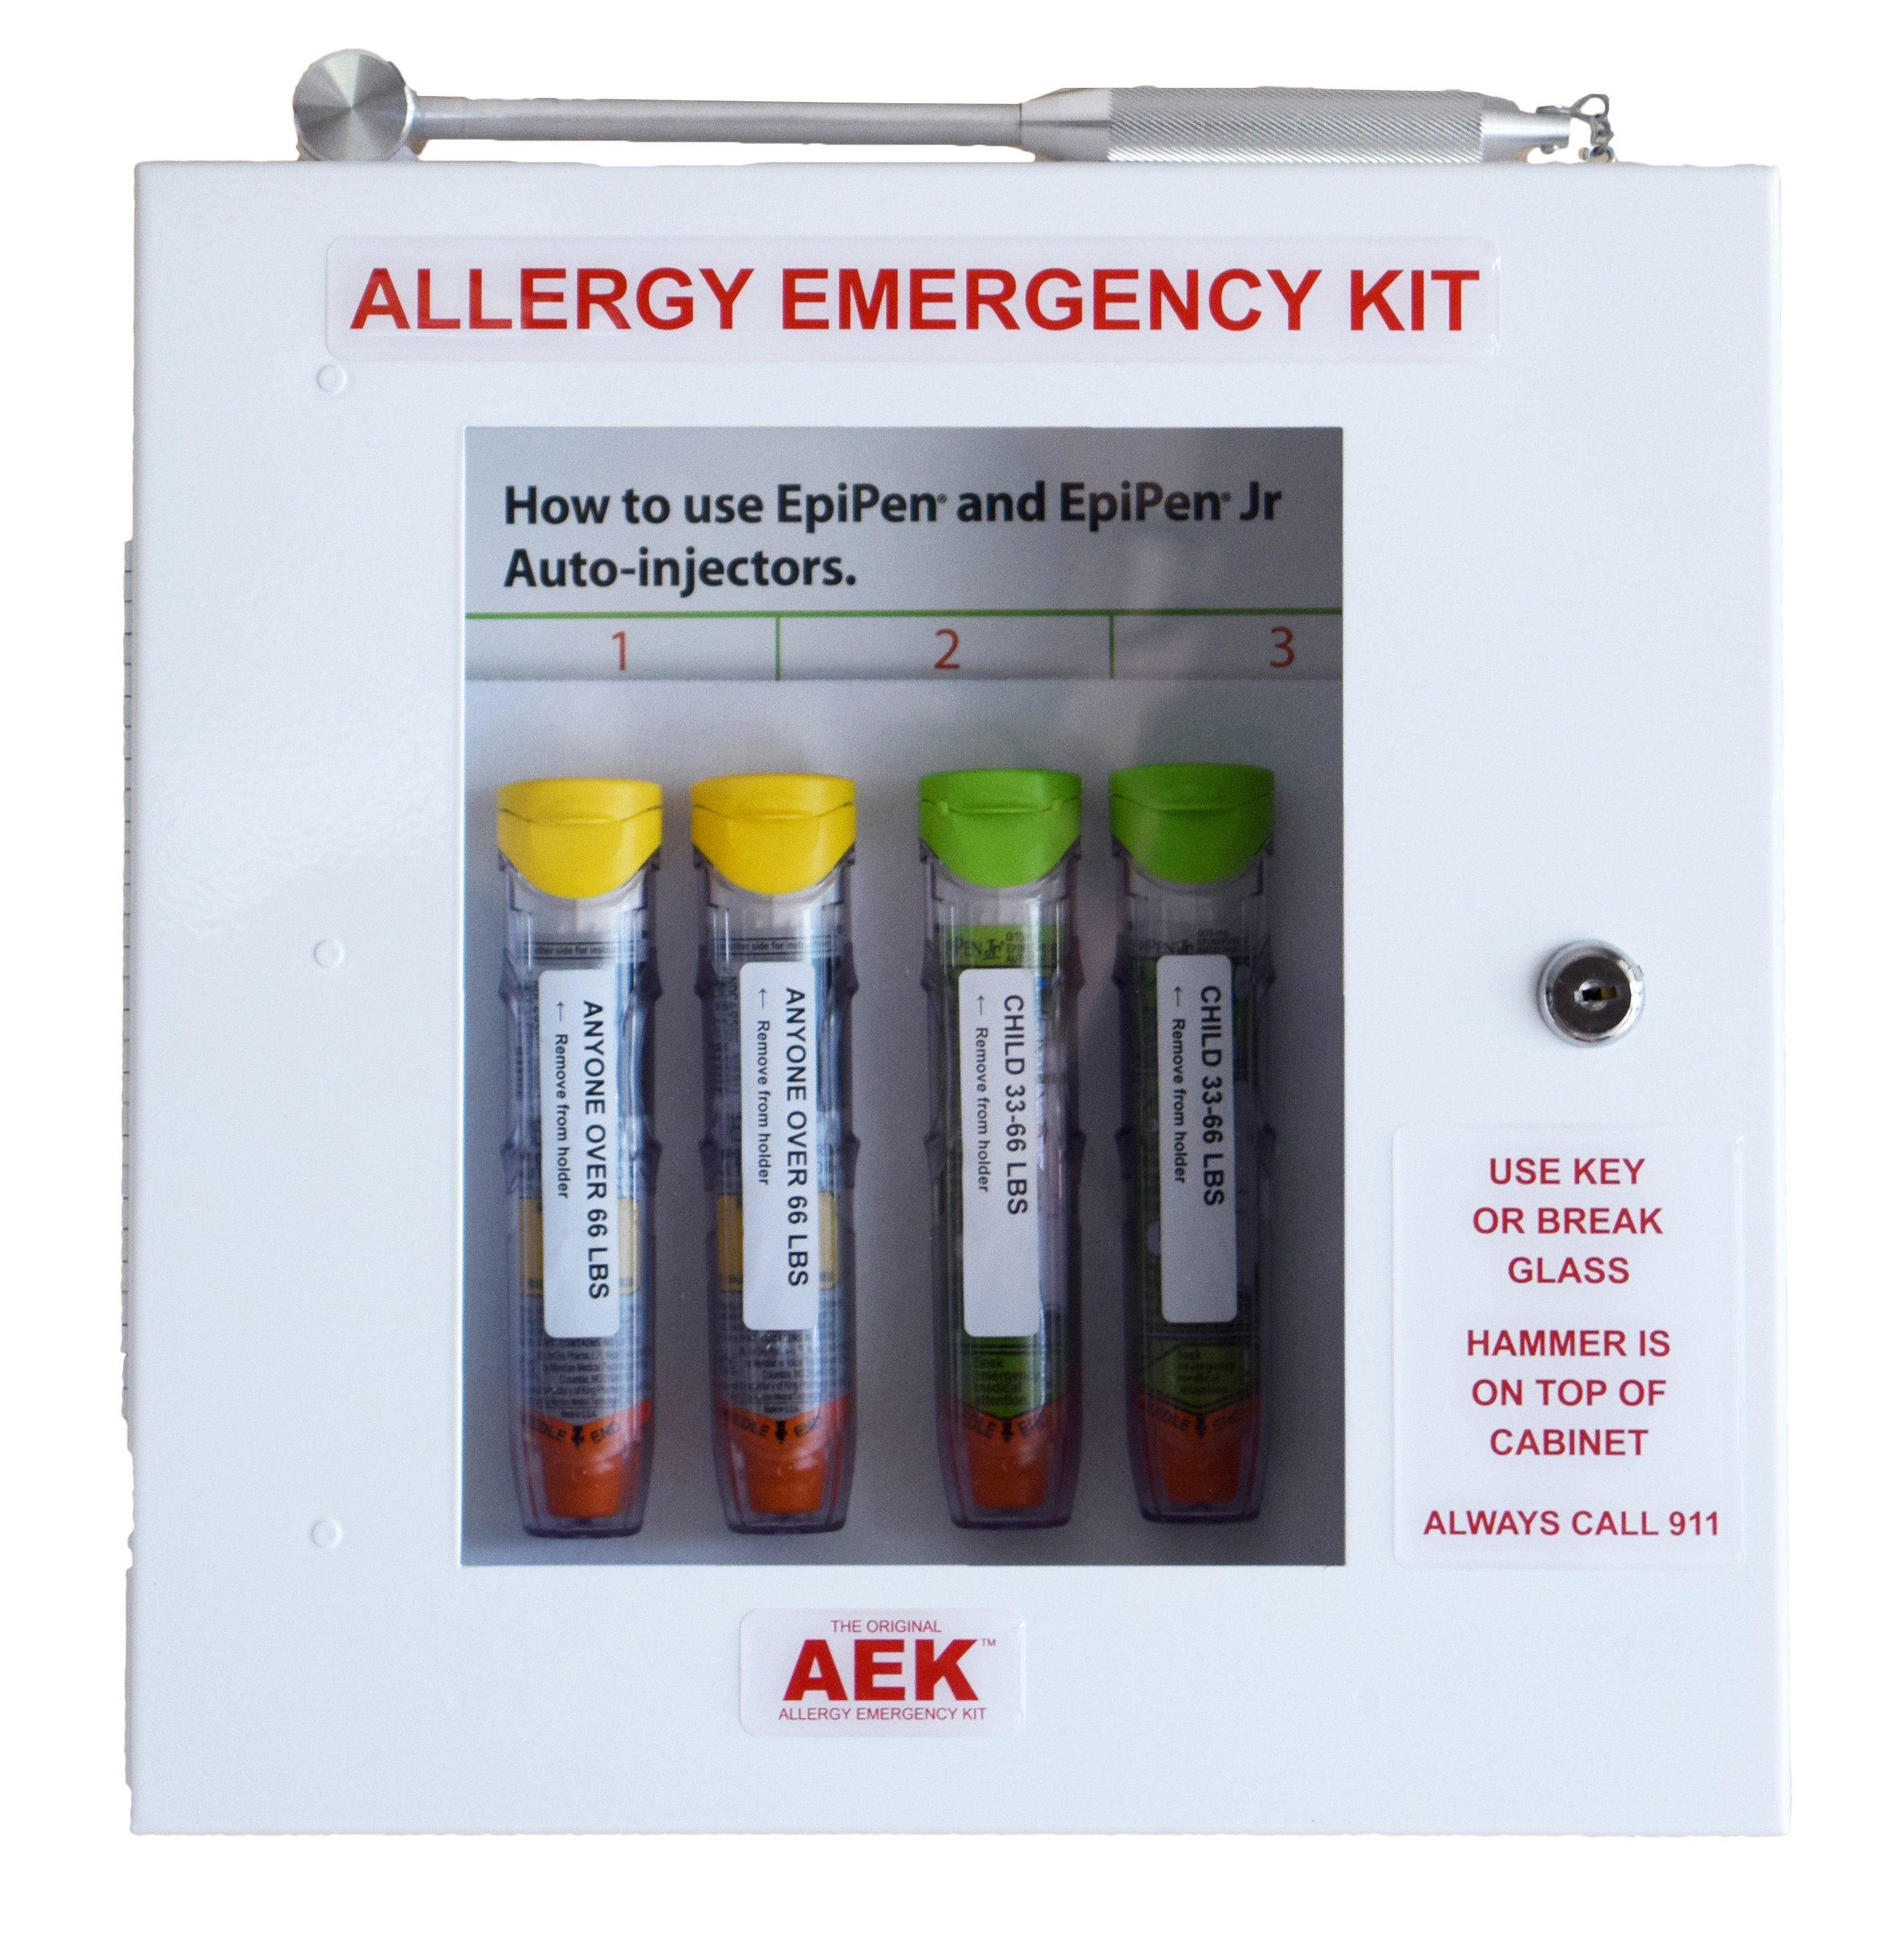 The Original Allergy Emergency Kit™ Epinephrine Cabinet WITH LOCK AND EMERGENCY ACCESS HAMMER